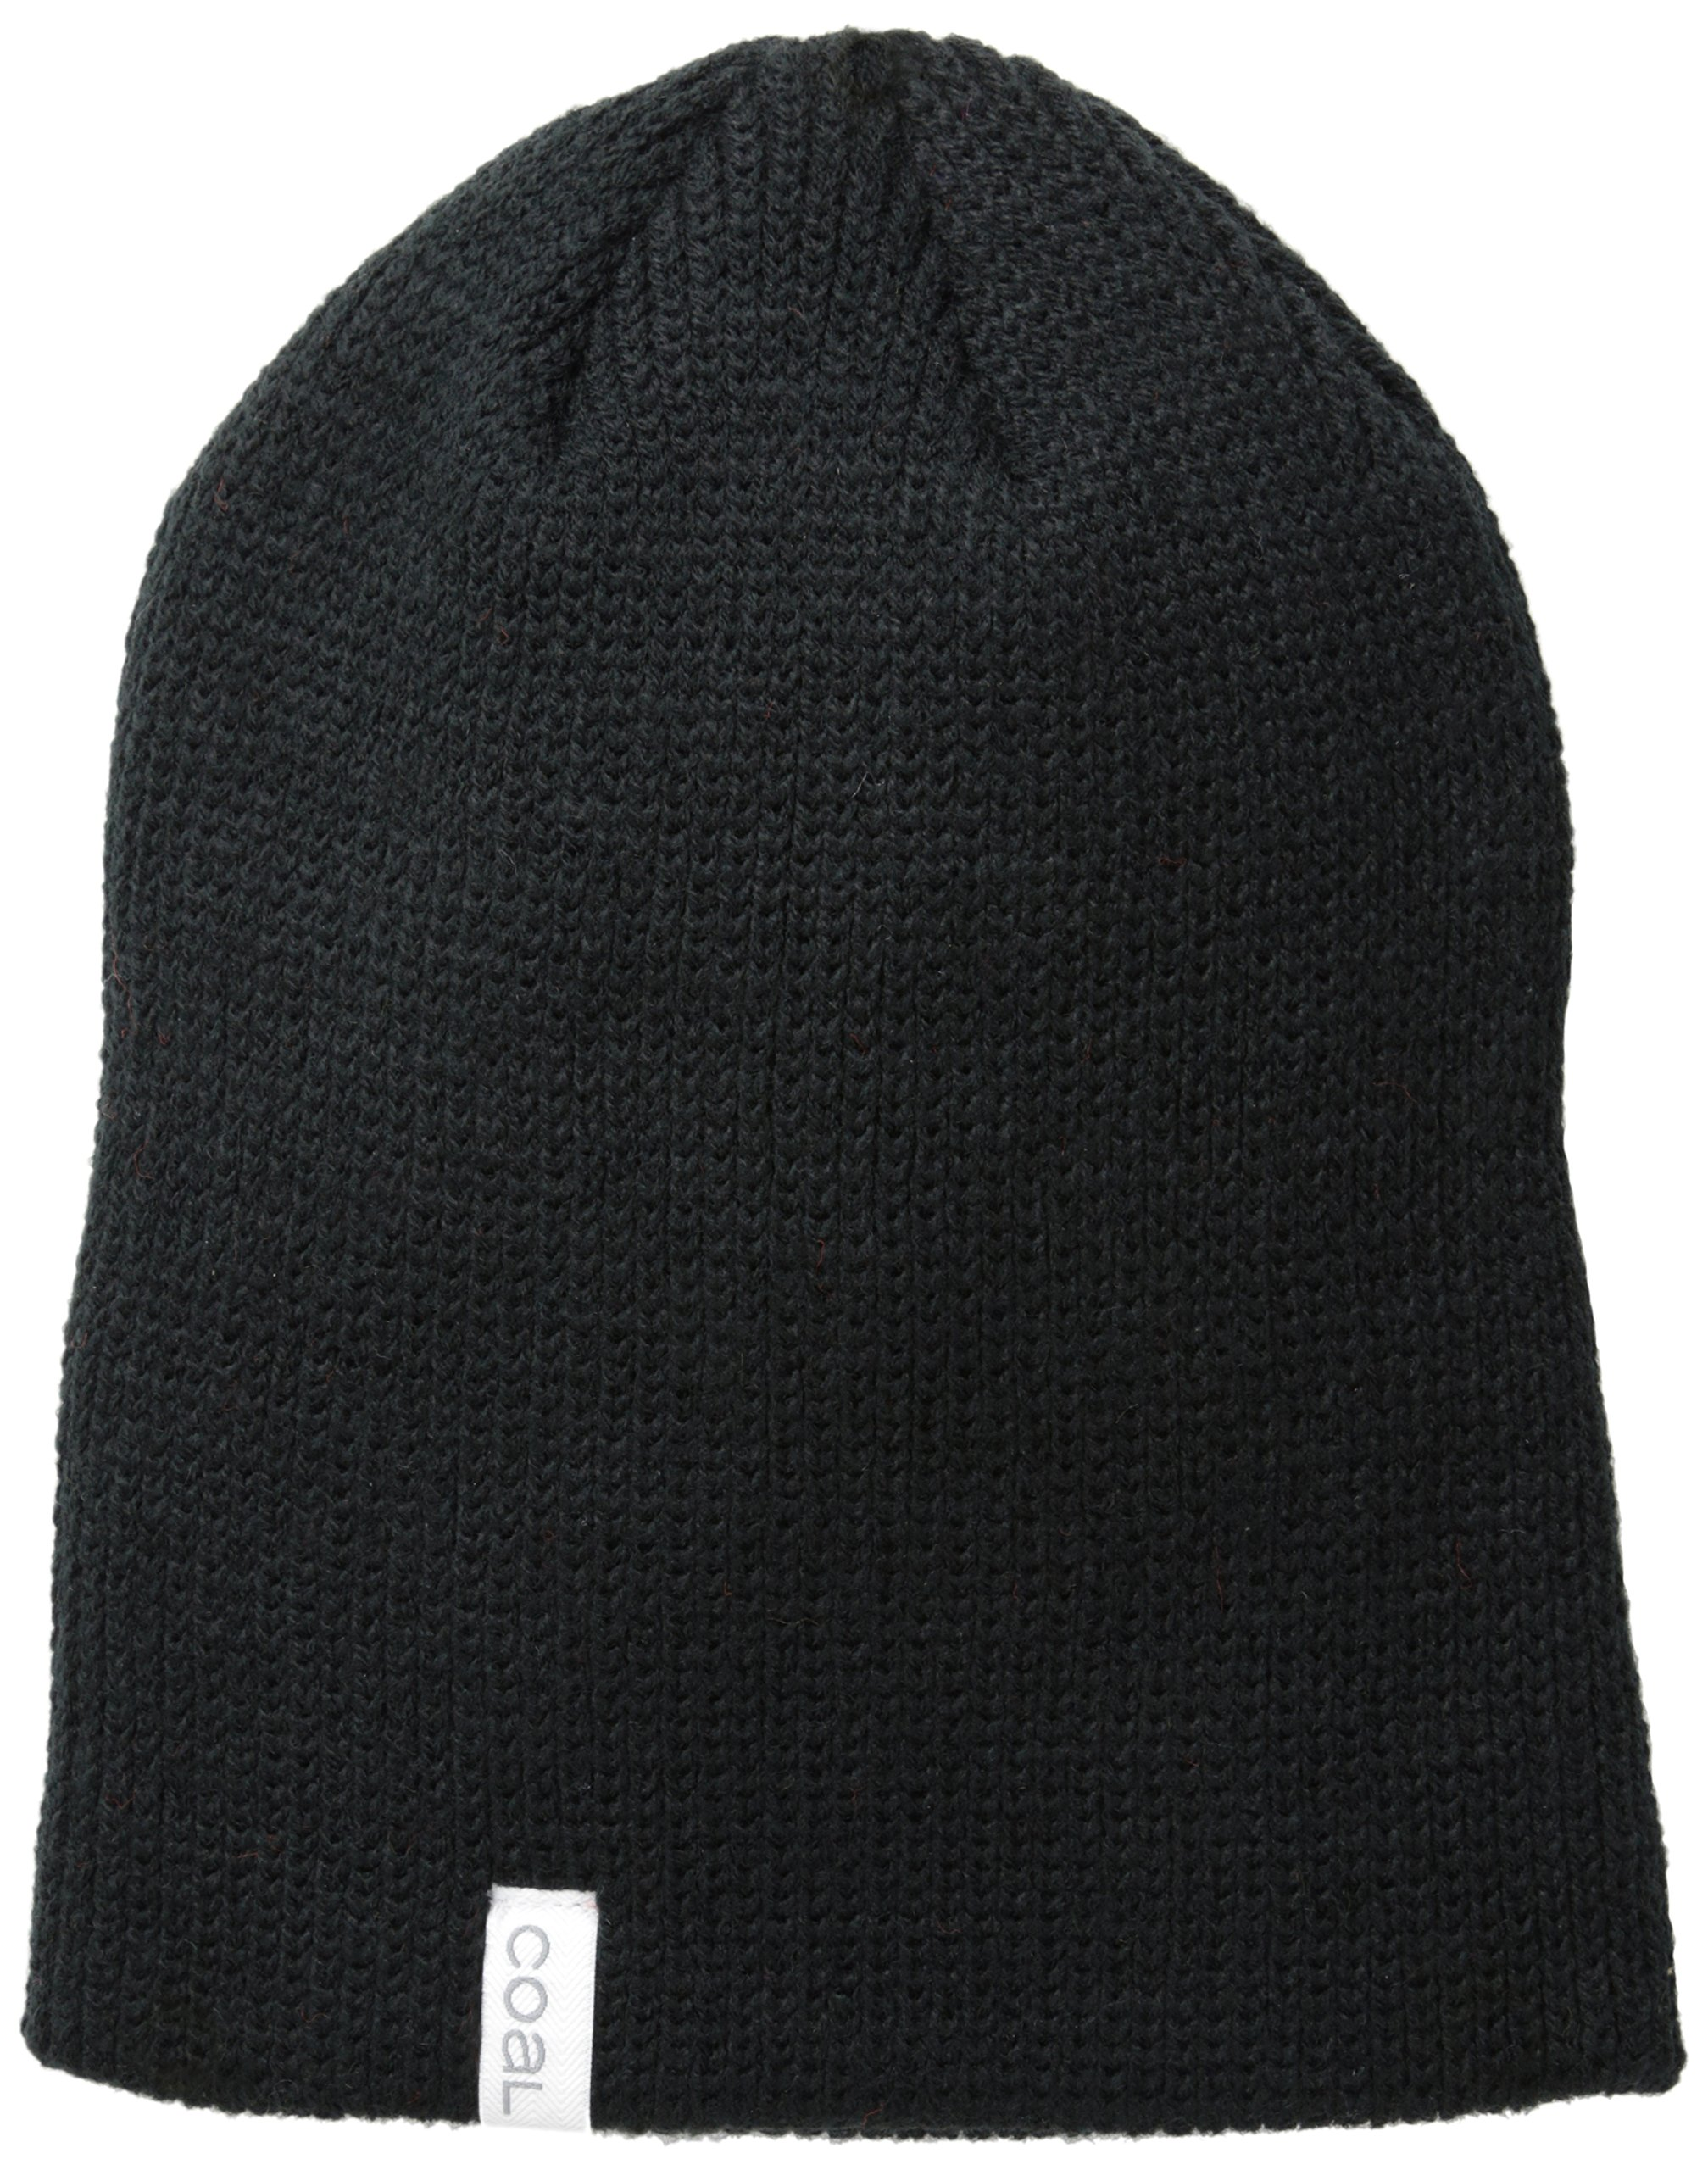 Coal Men's The Frena Solid Fine Knit Beanie Hat, Black, One Size